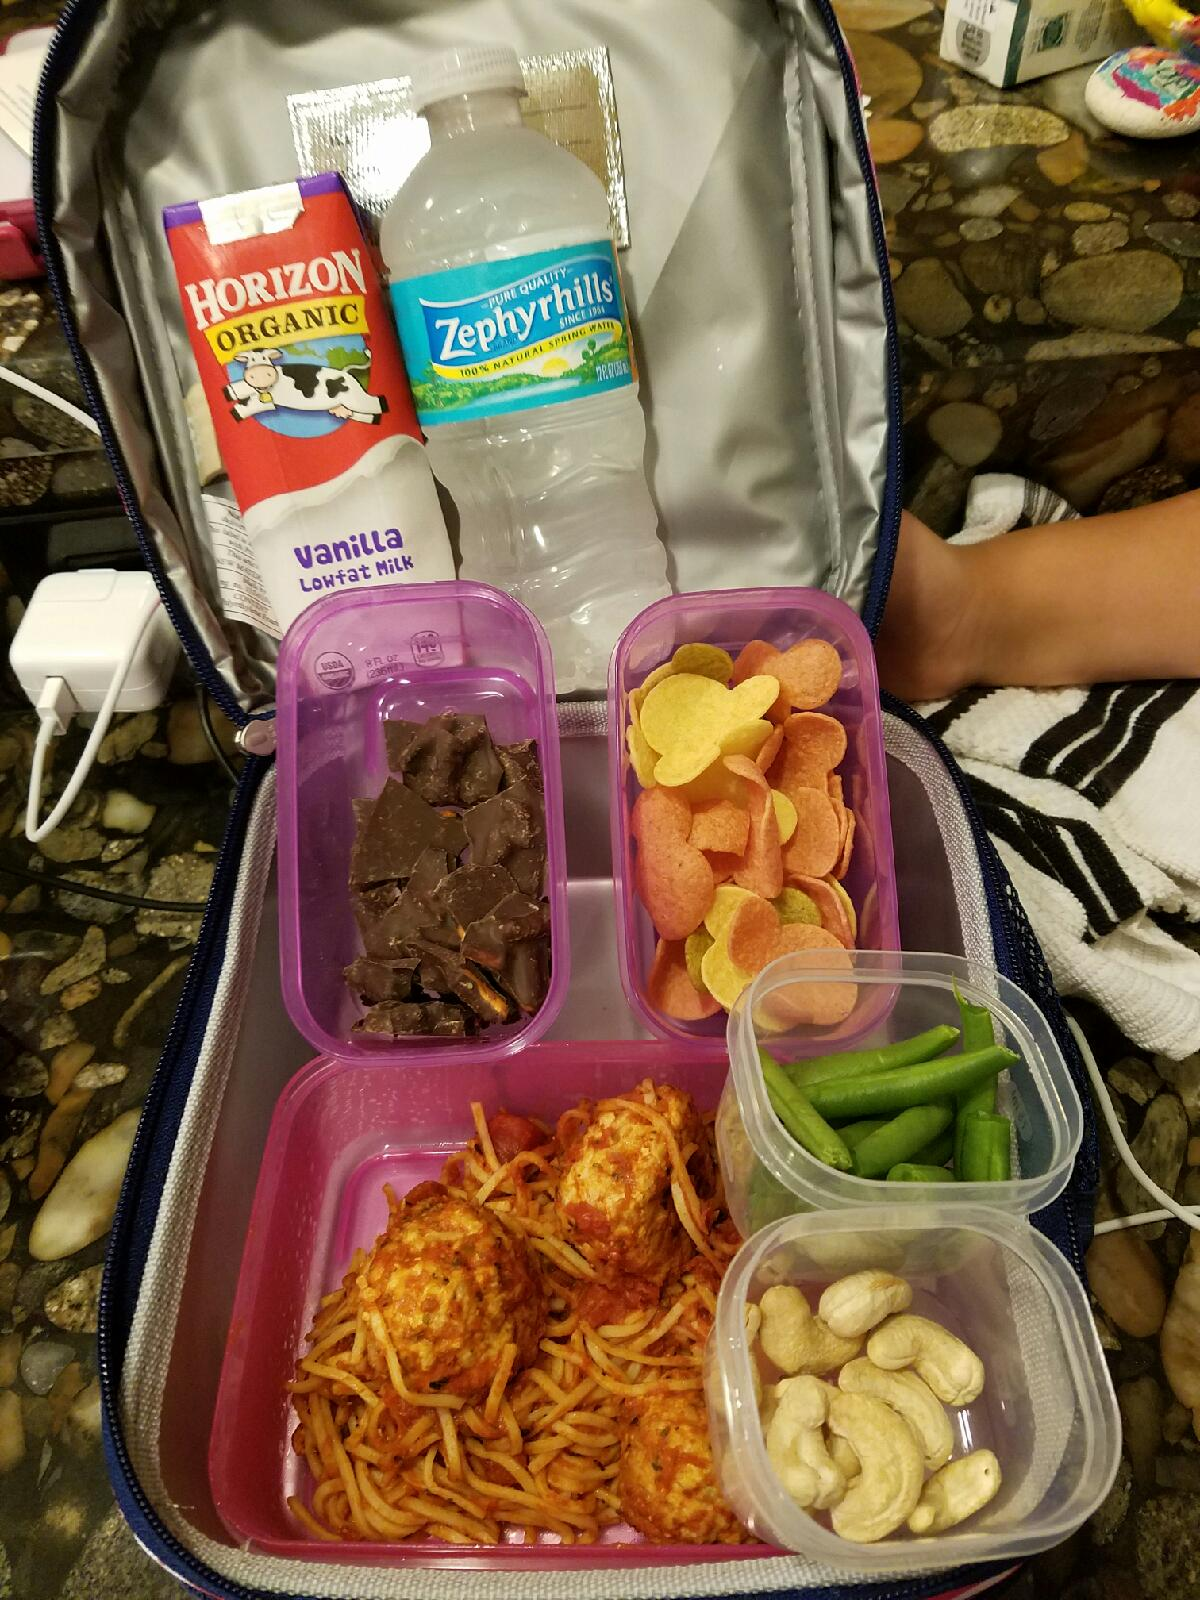 """Winning combination of clean carbohydrates, lean protein, and healthy fats with colorful veggies! And that's whole wheat pasta, which was something my client """"did not like"""" but now she loves! Yay for whole grains!"""